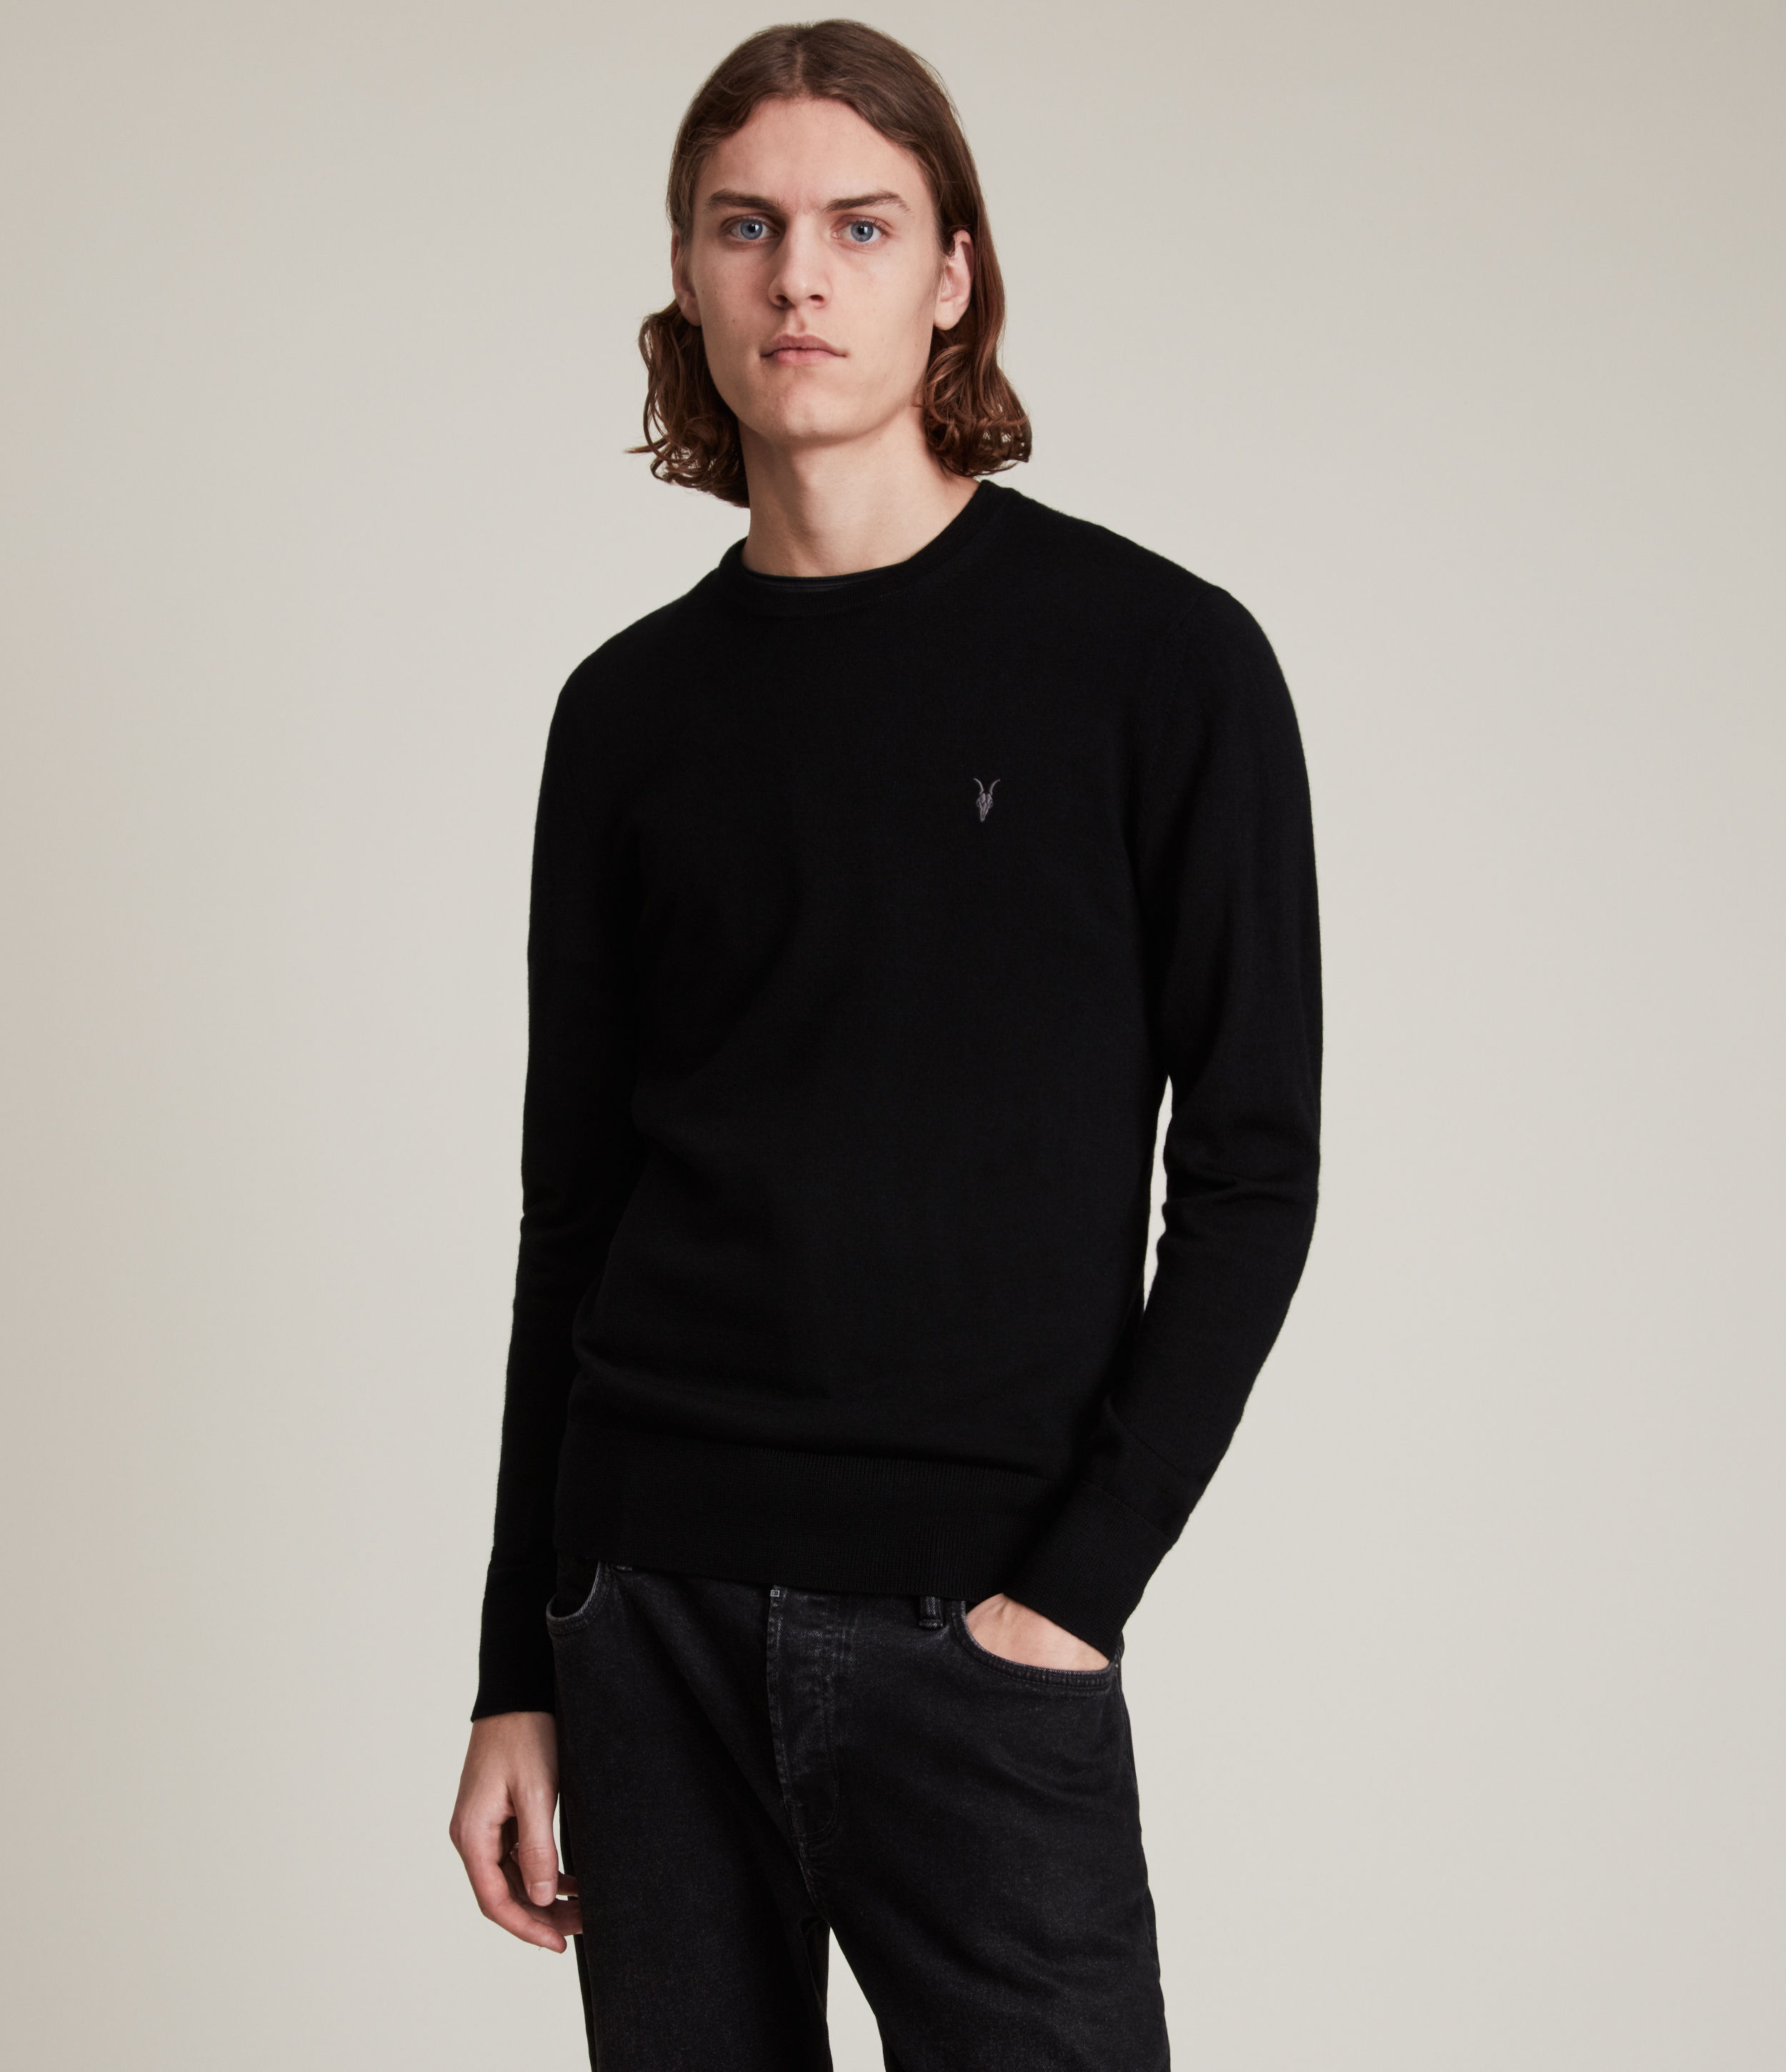 AllSaints Men's Merino Wool Lightweight Mode Crew Jumper, Black, Size: M